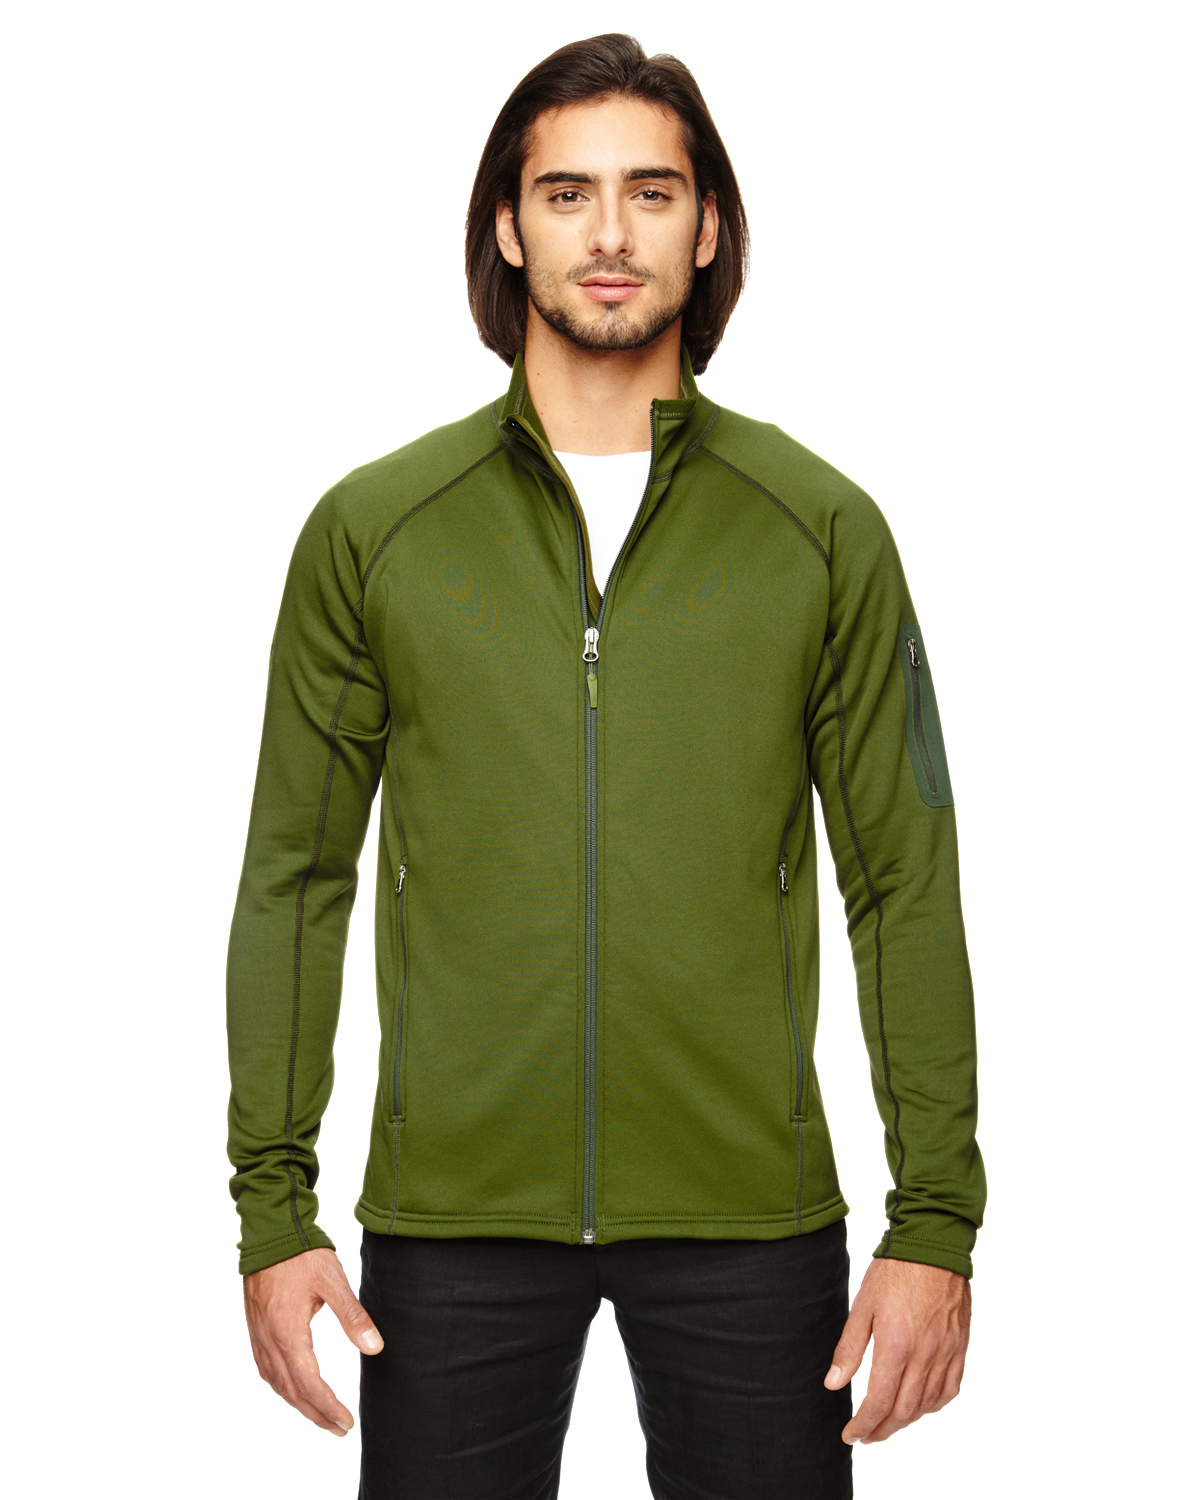 Marmot - 80840 Men's Stretch Fleece Jacket, Pensacola, Embroidery, Screen Printing, Logo Masters International